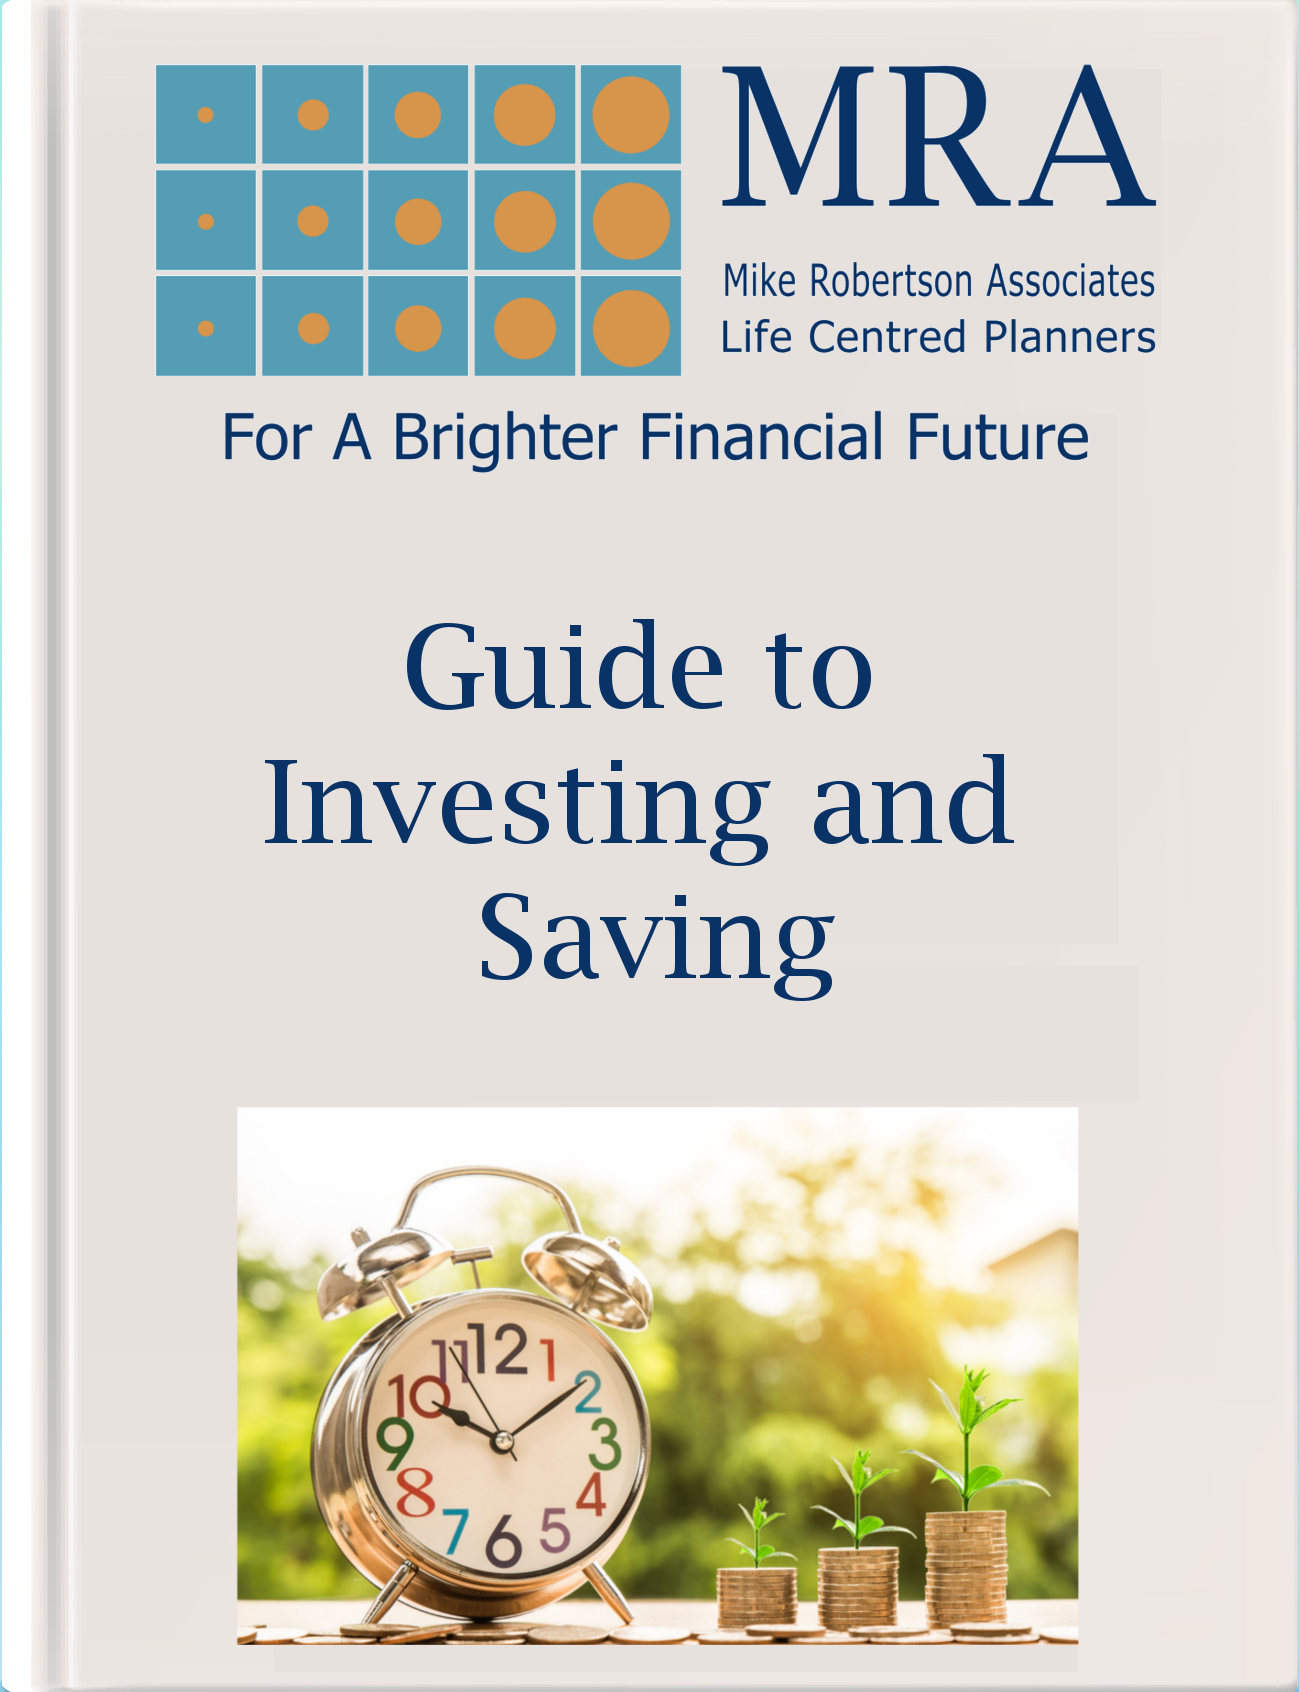 Download our Guide to Investing and Saving